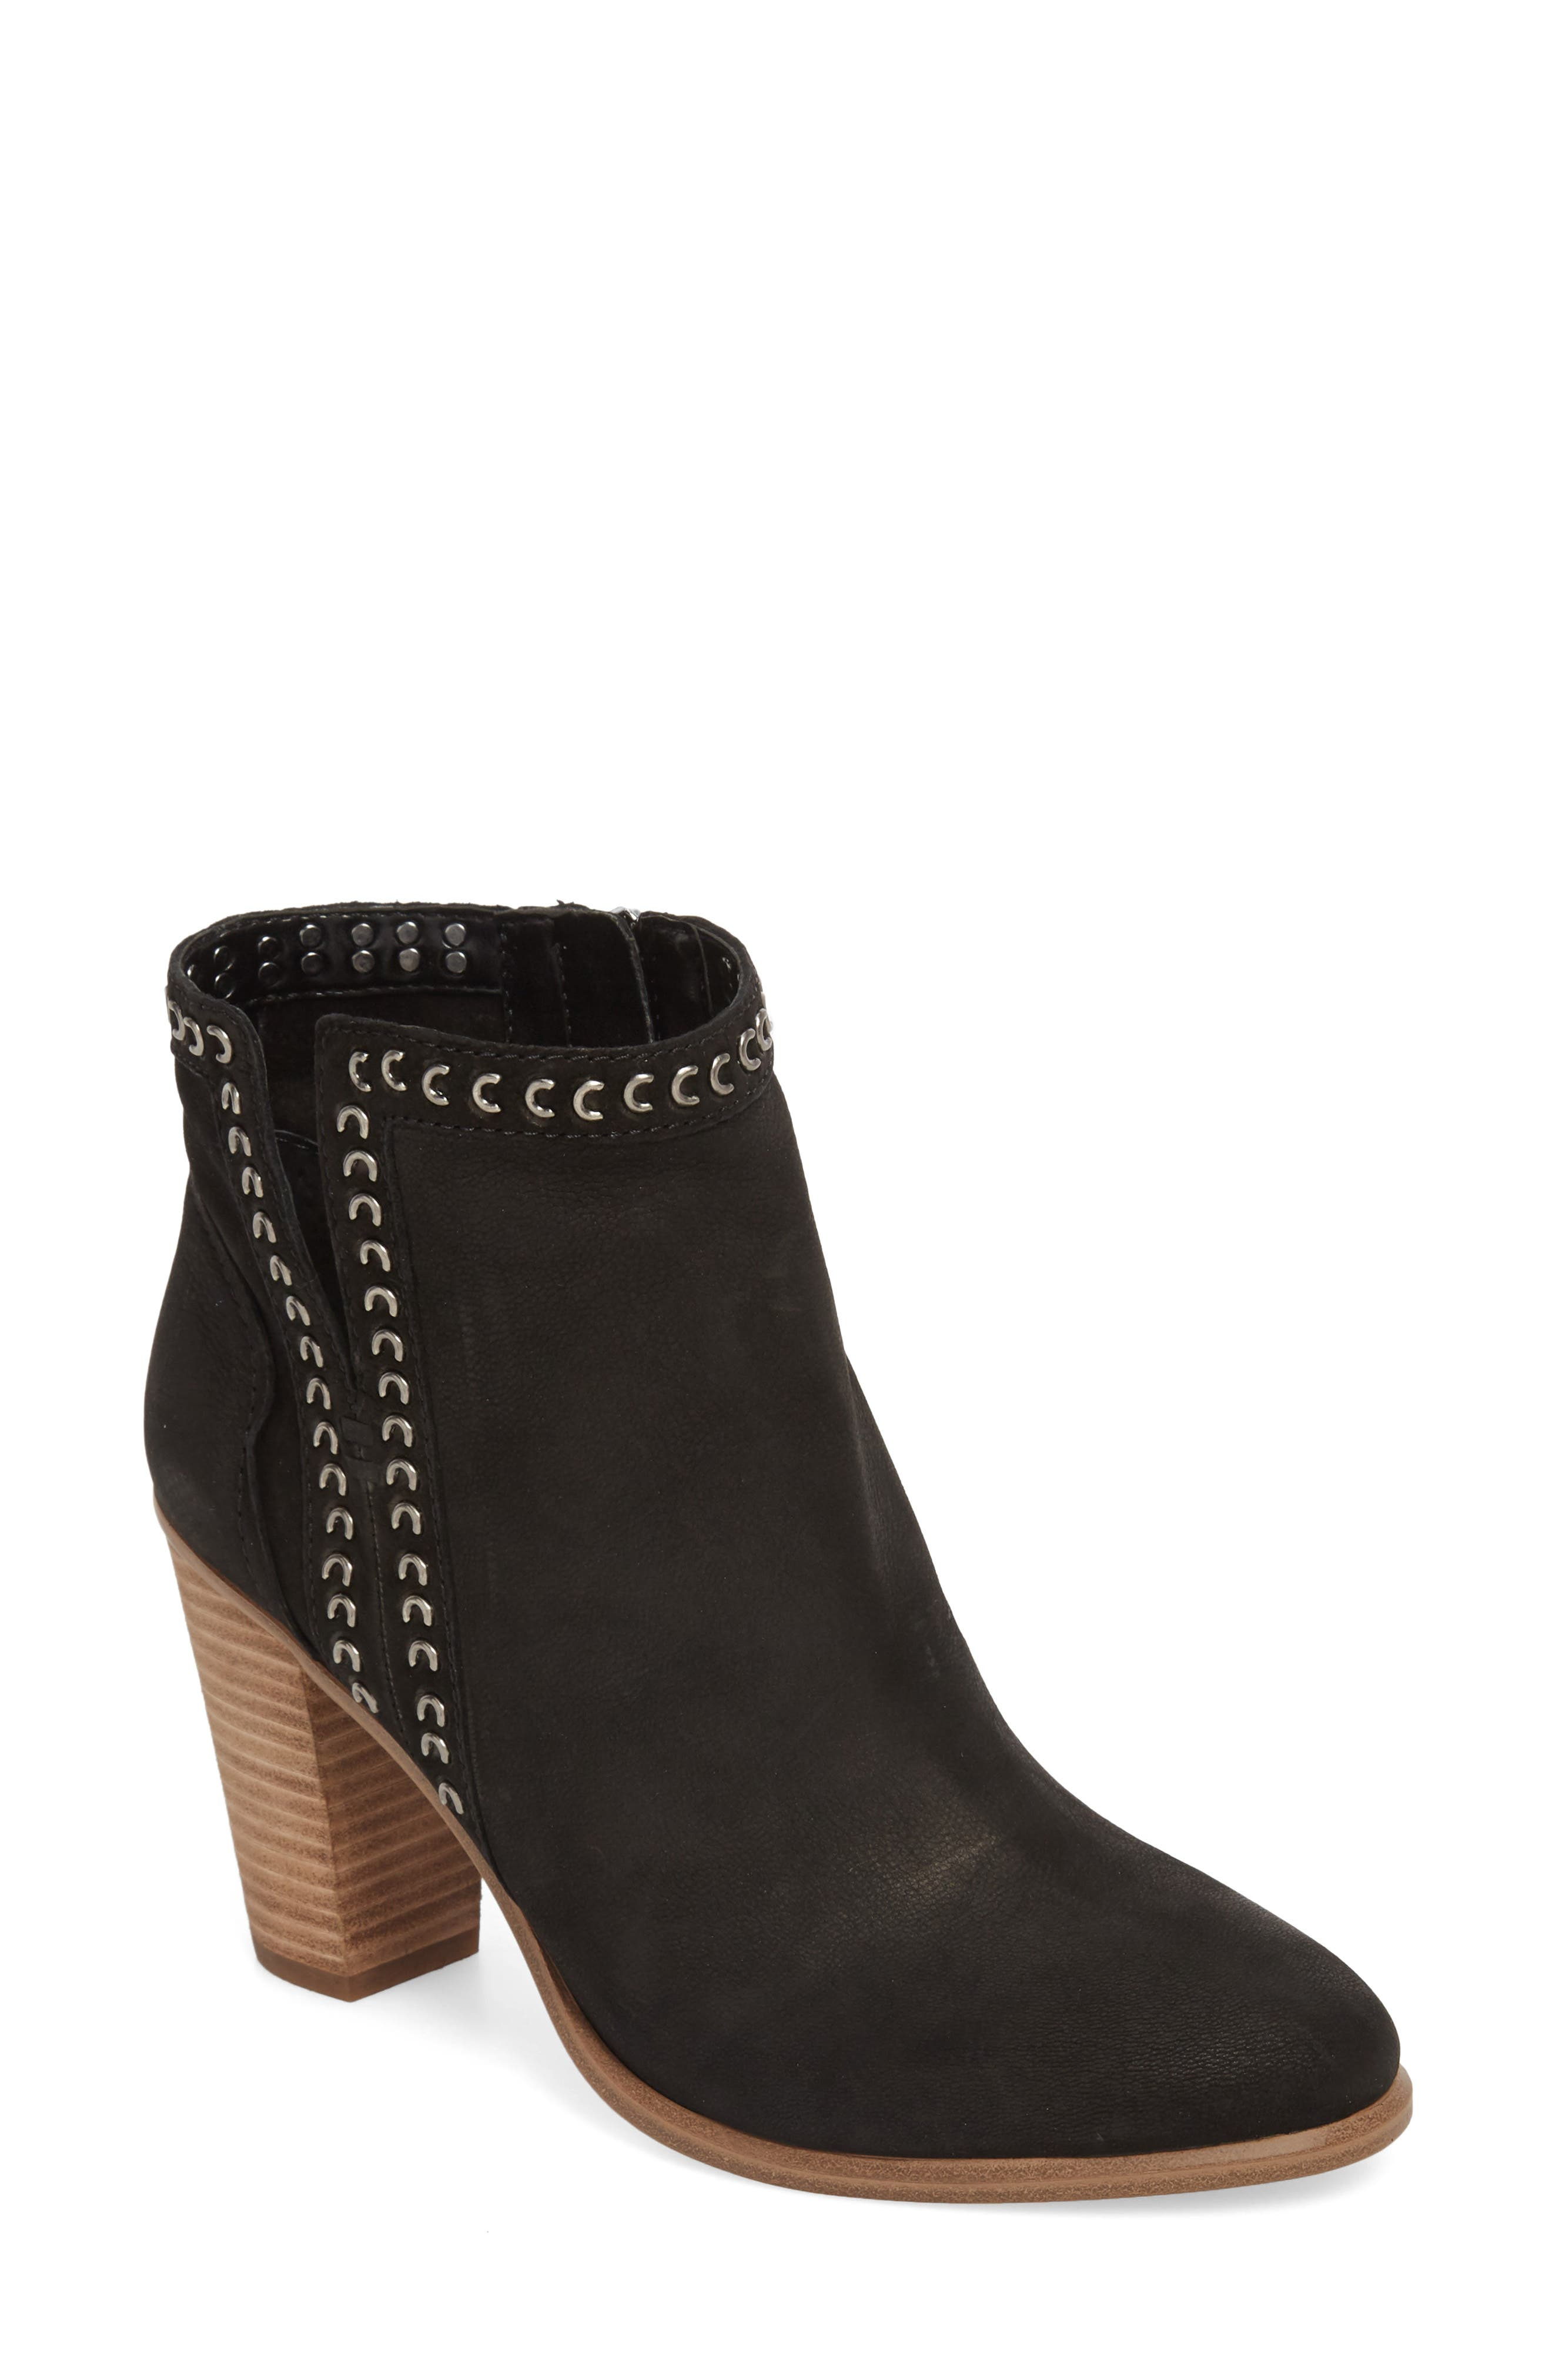 Finchie Bootie,                         Main,                         color, BLACK LEATHER